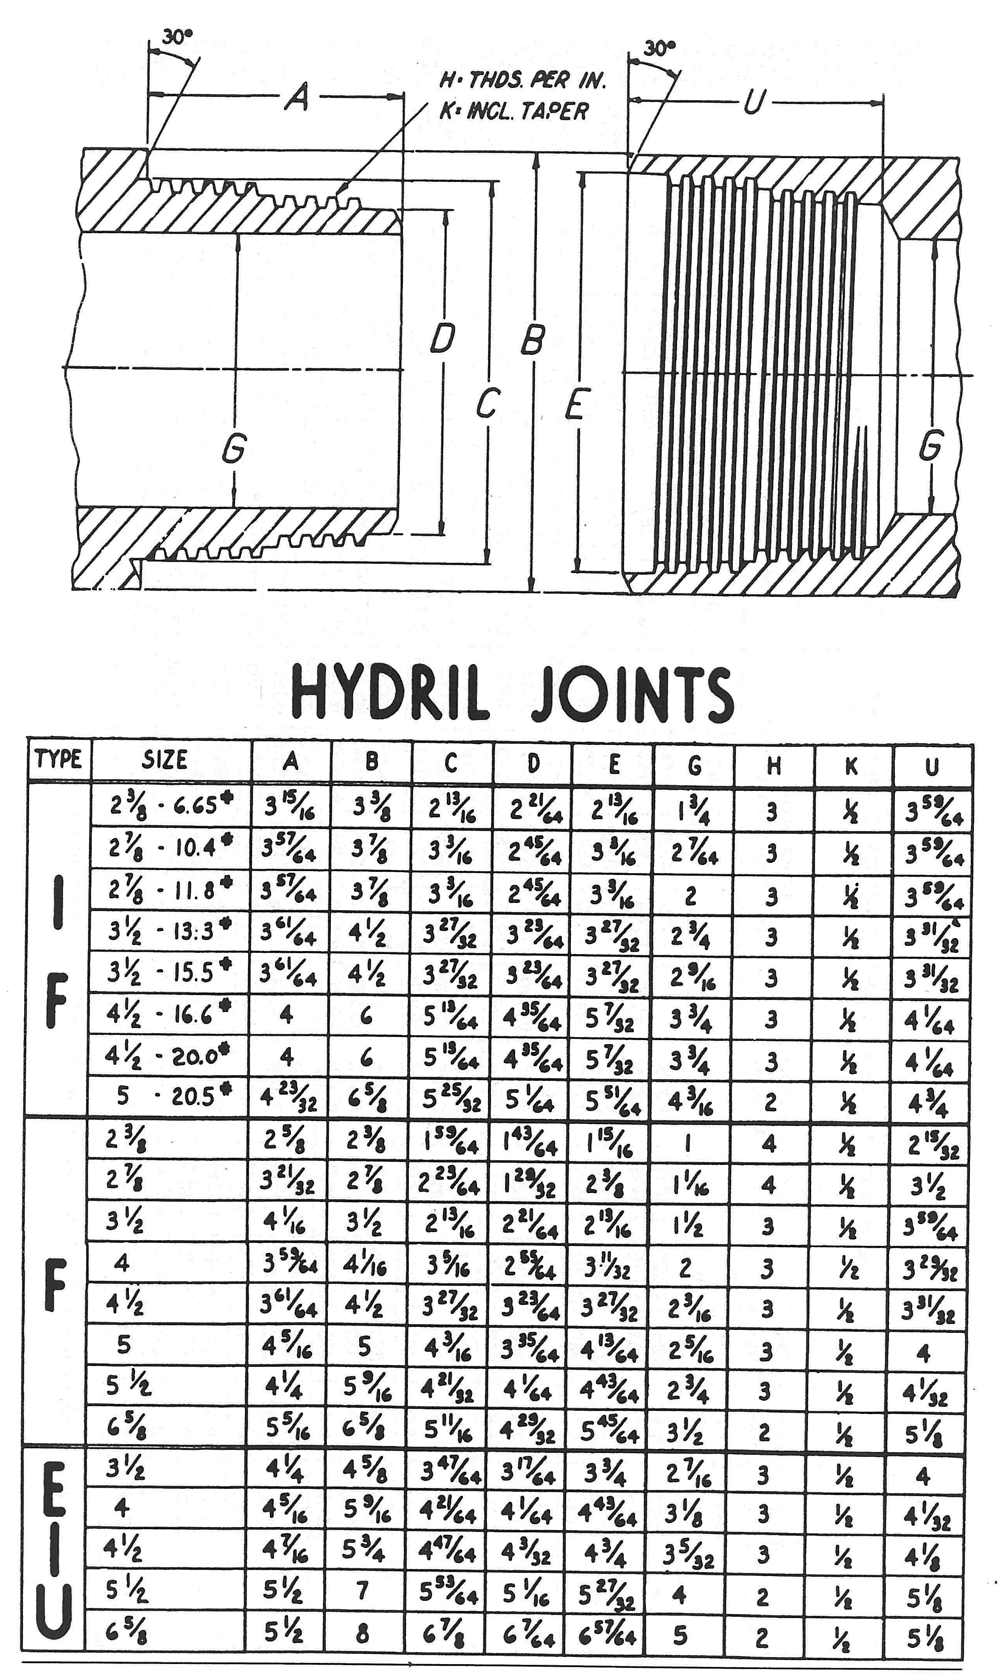 Hydril Joints